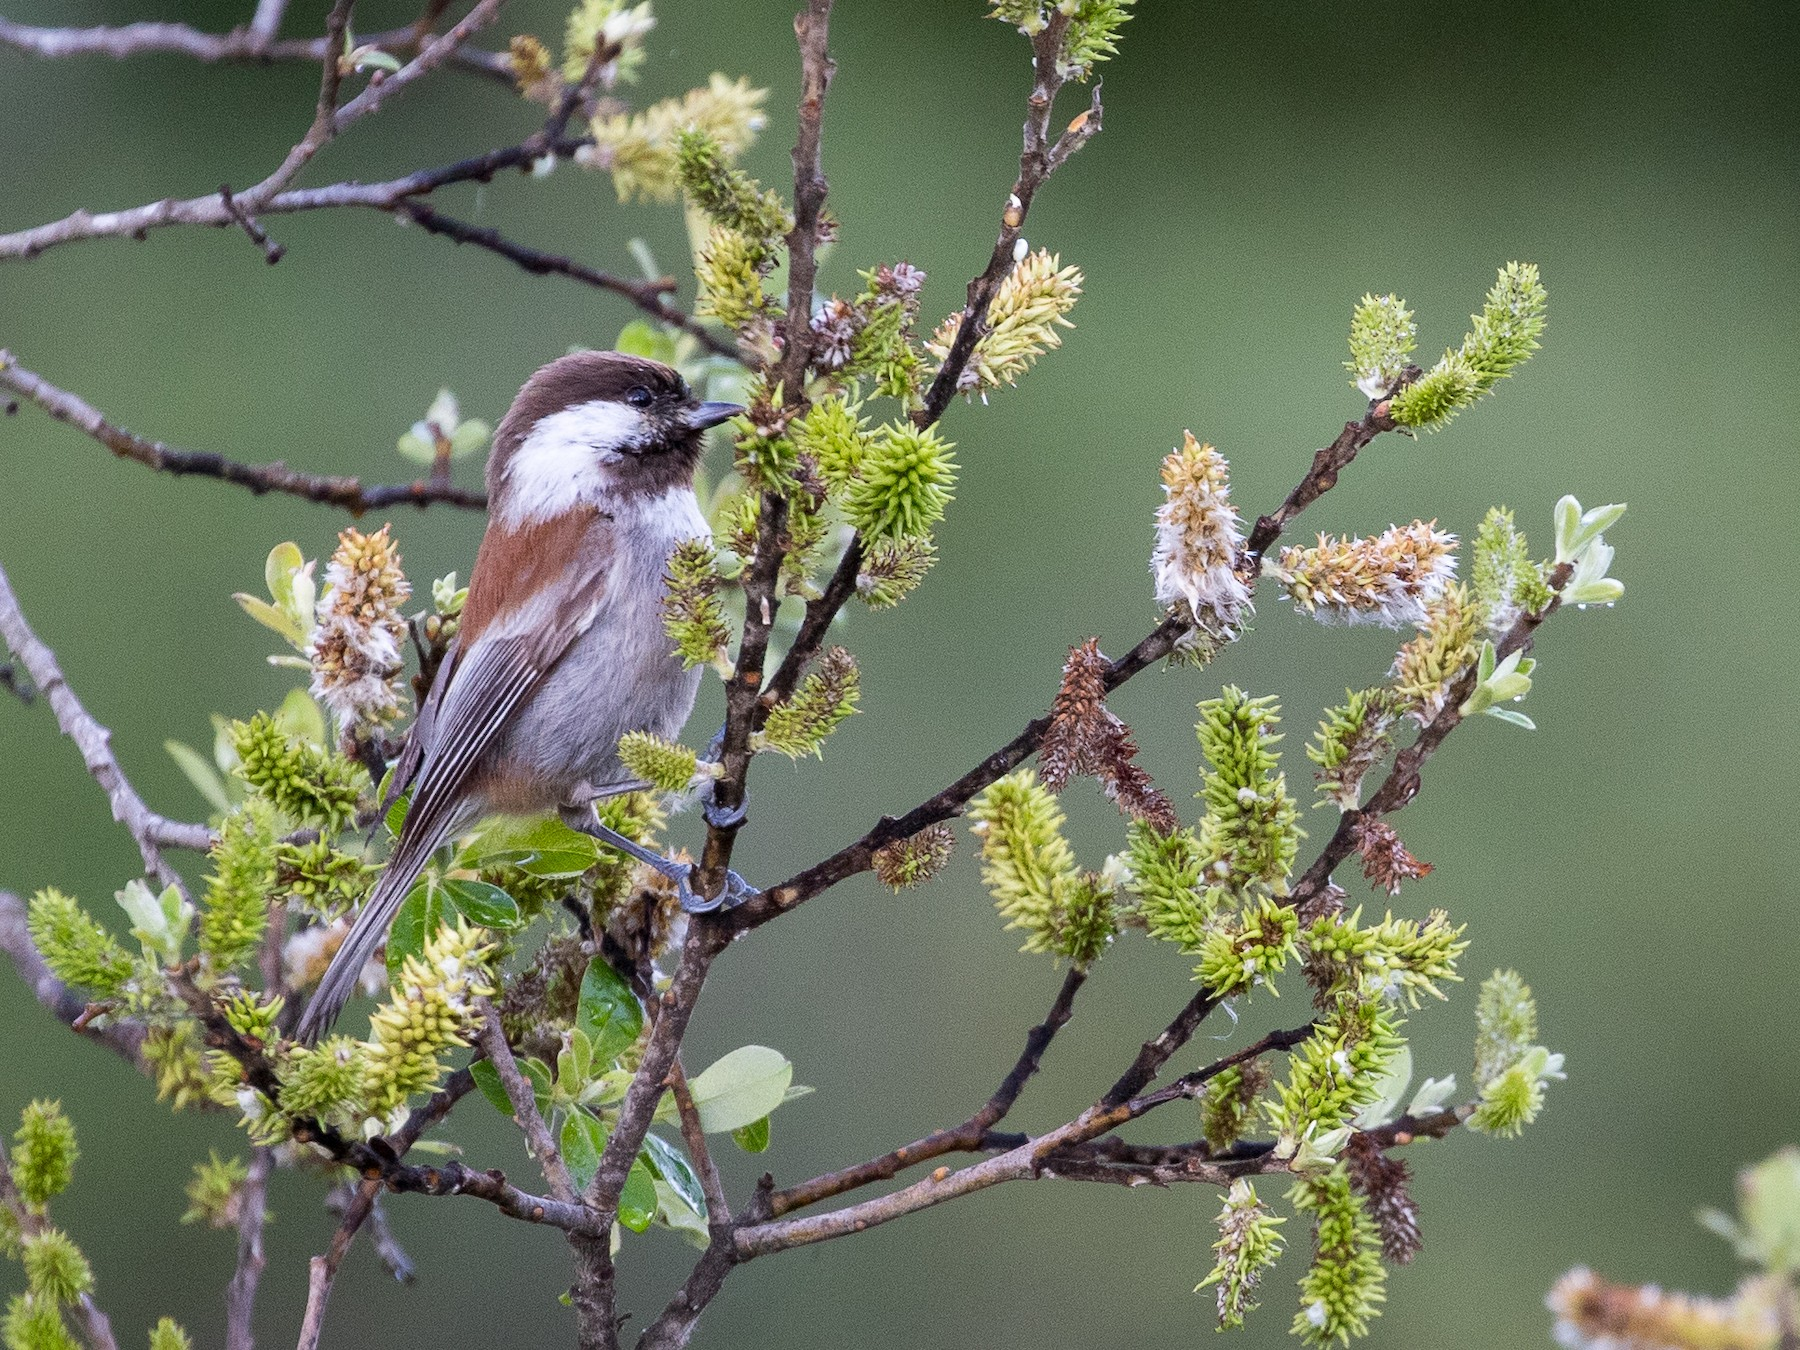 Chestnut-backed Chickadee - Michael Owen Hilchey